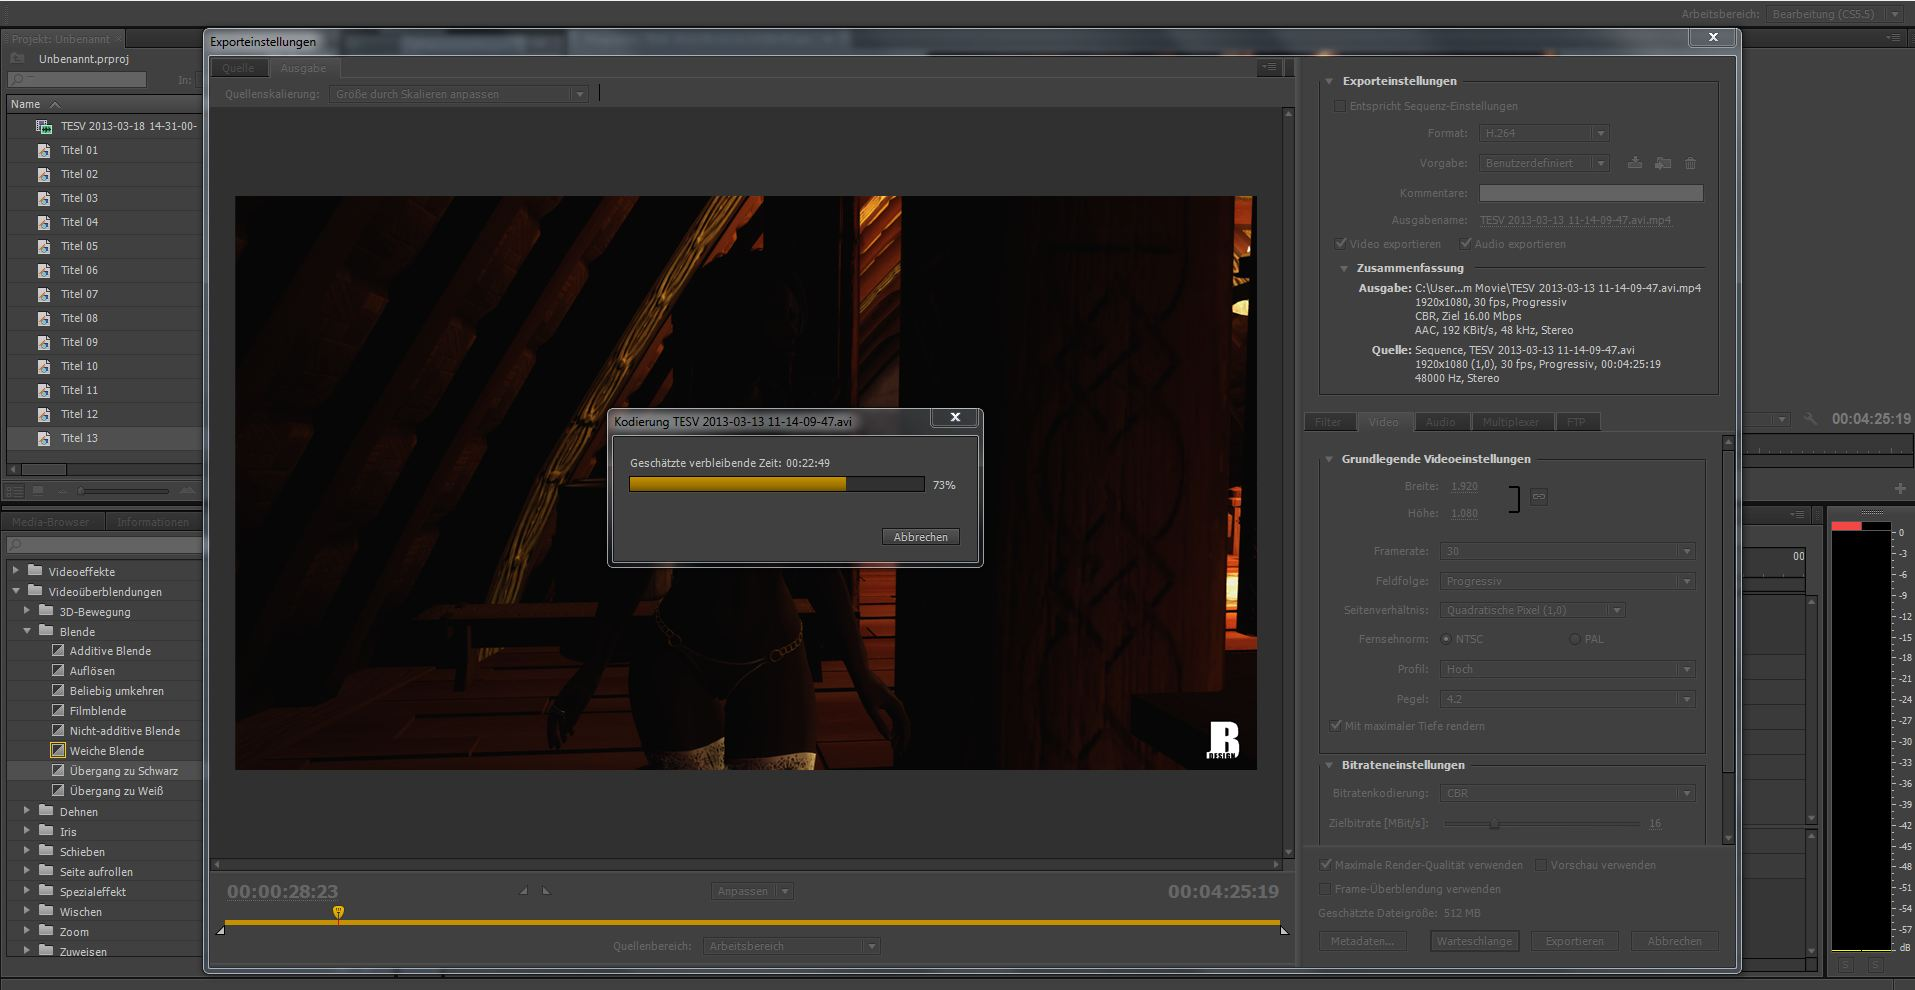 Skyrim Movie pt2 is rendering